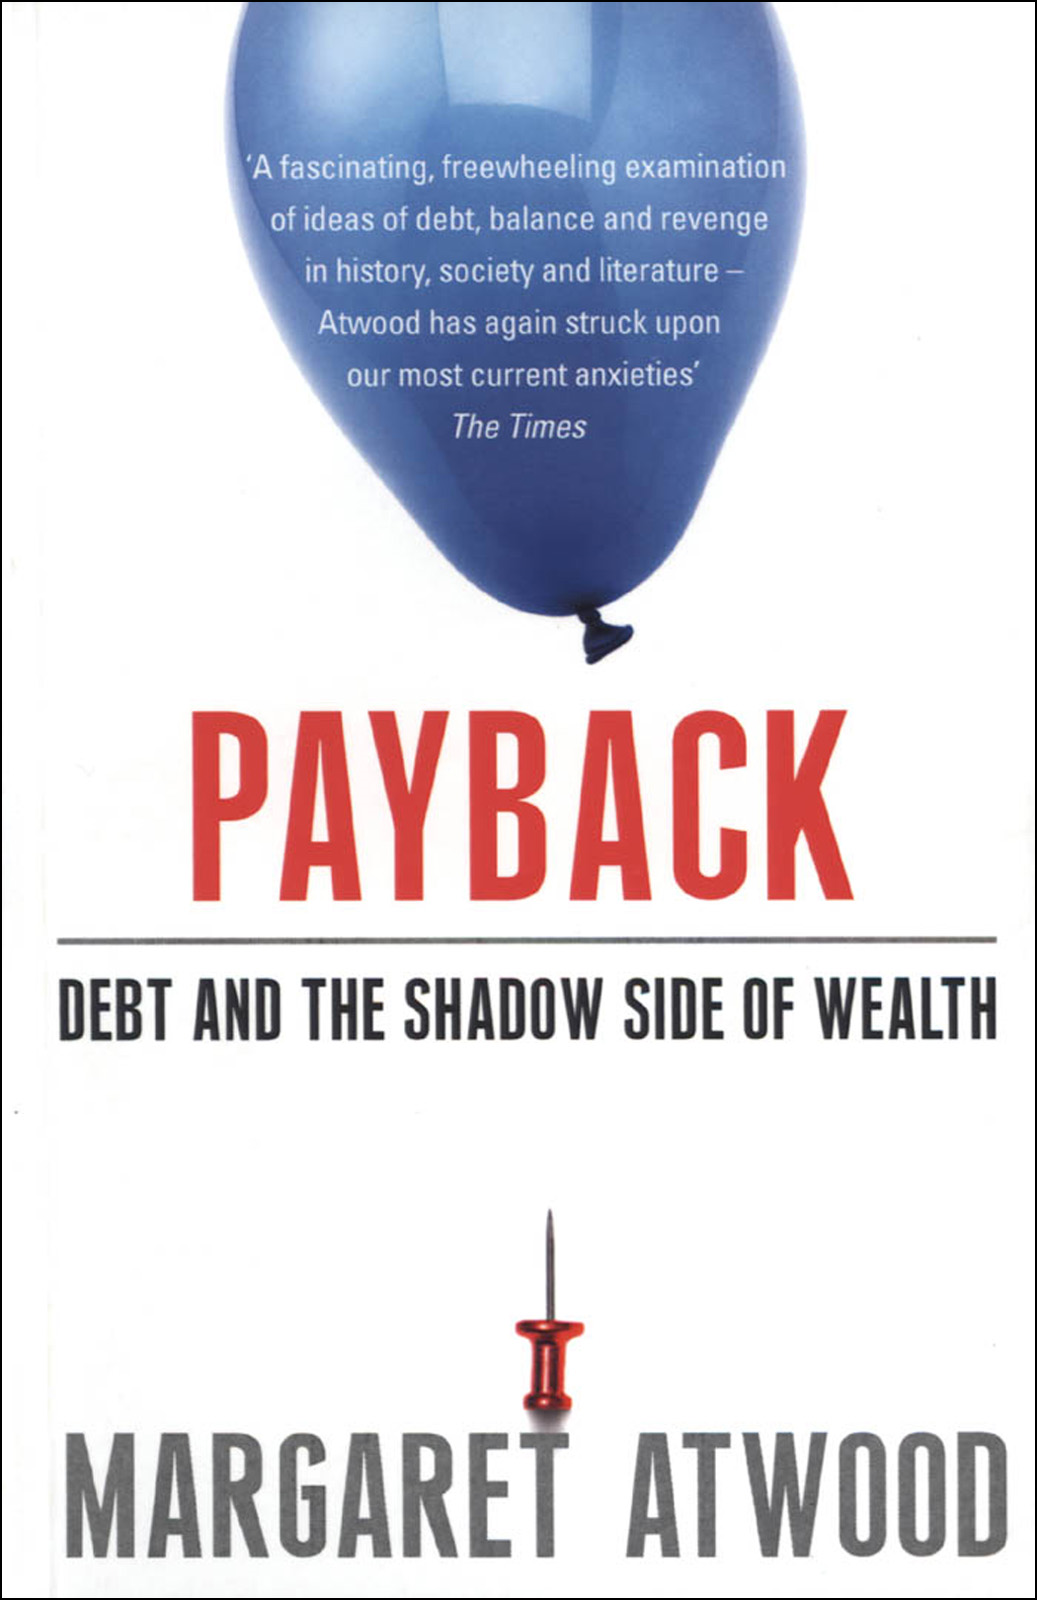 Payback Debt and the Shadow Side of Wealth